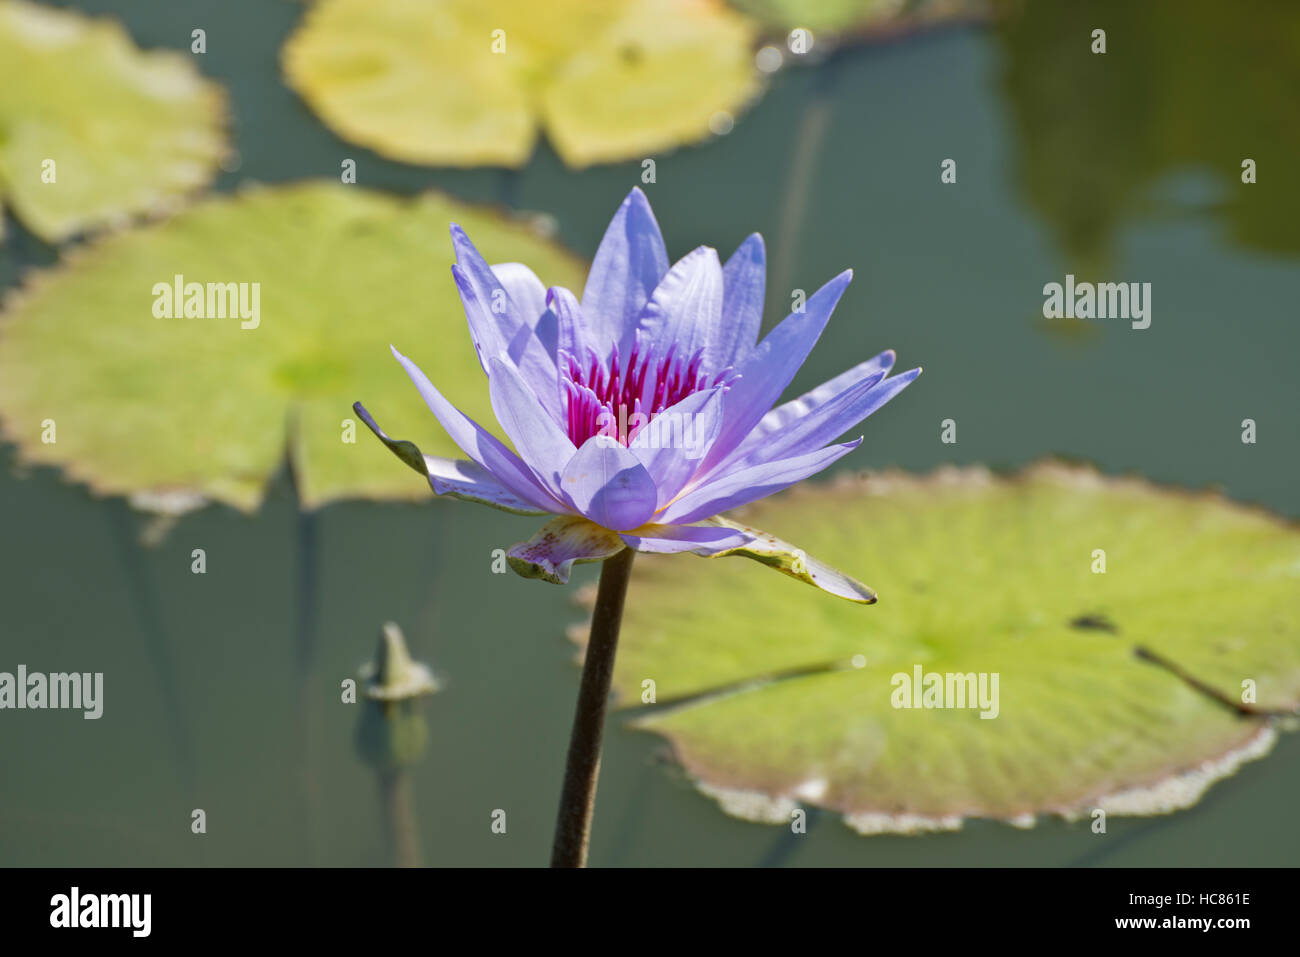 Photograph of purple waterlily and lily pads in a pond. - Stock Image